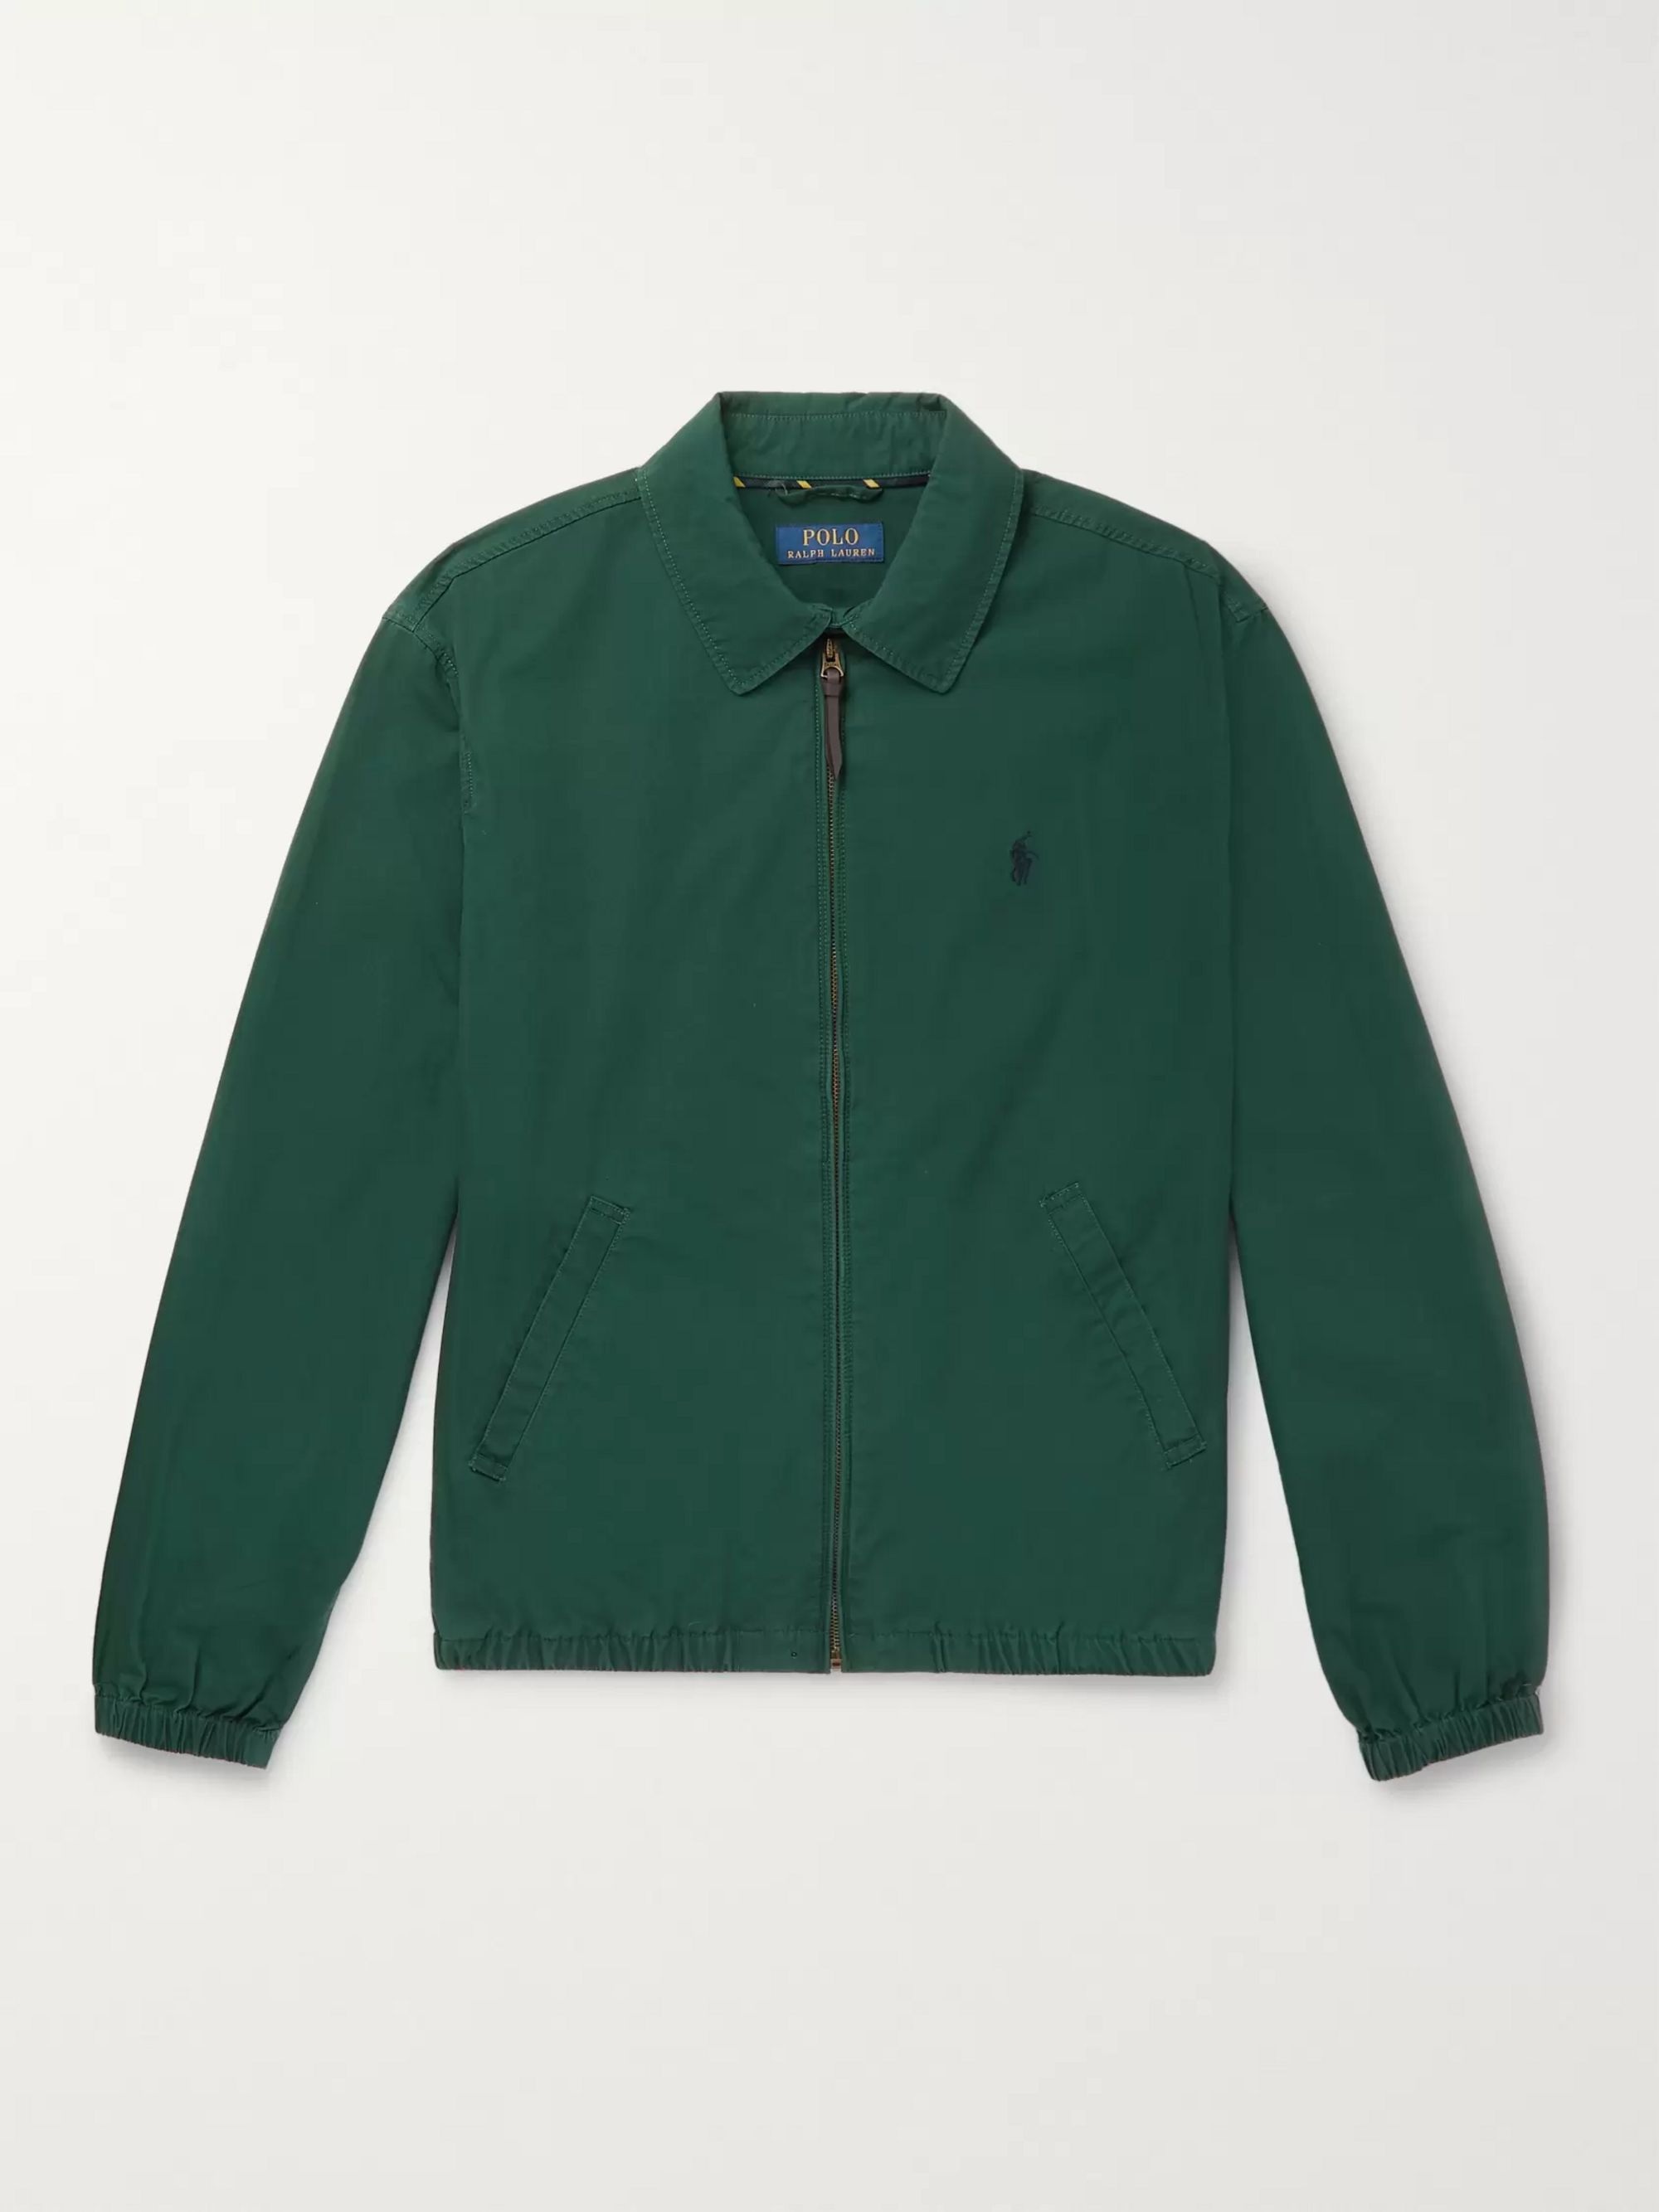 incredible prices free shipping differently Cotton Harrington Jacket